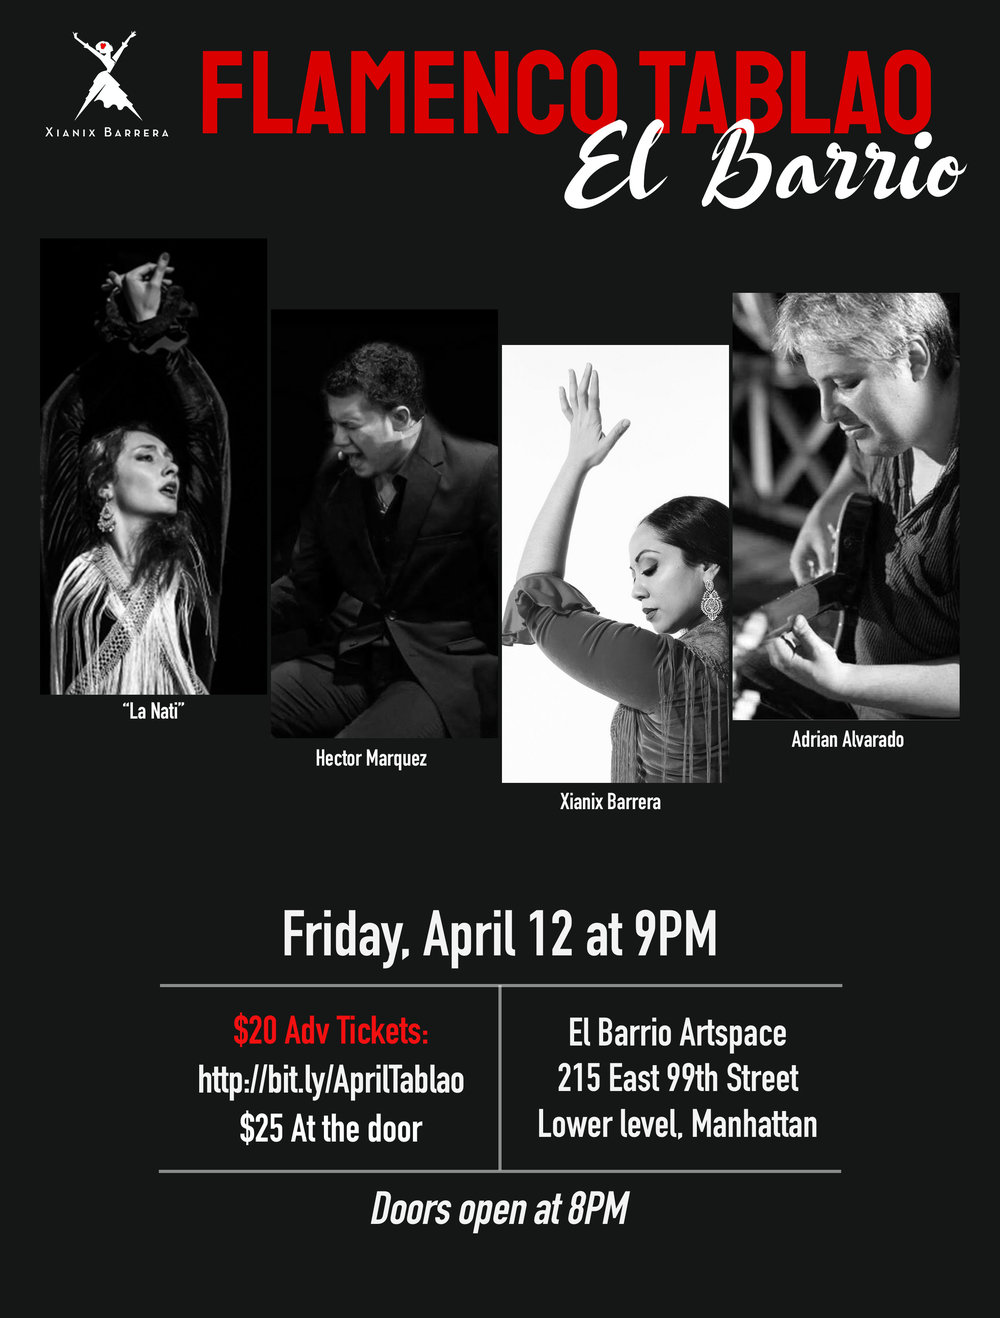 Fri. April 12th - 9pm-MONTHLY FLAMENCO TABLAO SHOW- - EVERY SECOND FRIDAY OF THE MONTH,IN THE HEART OF SPANISH HARLEM